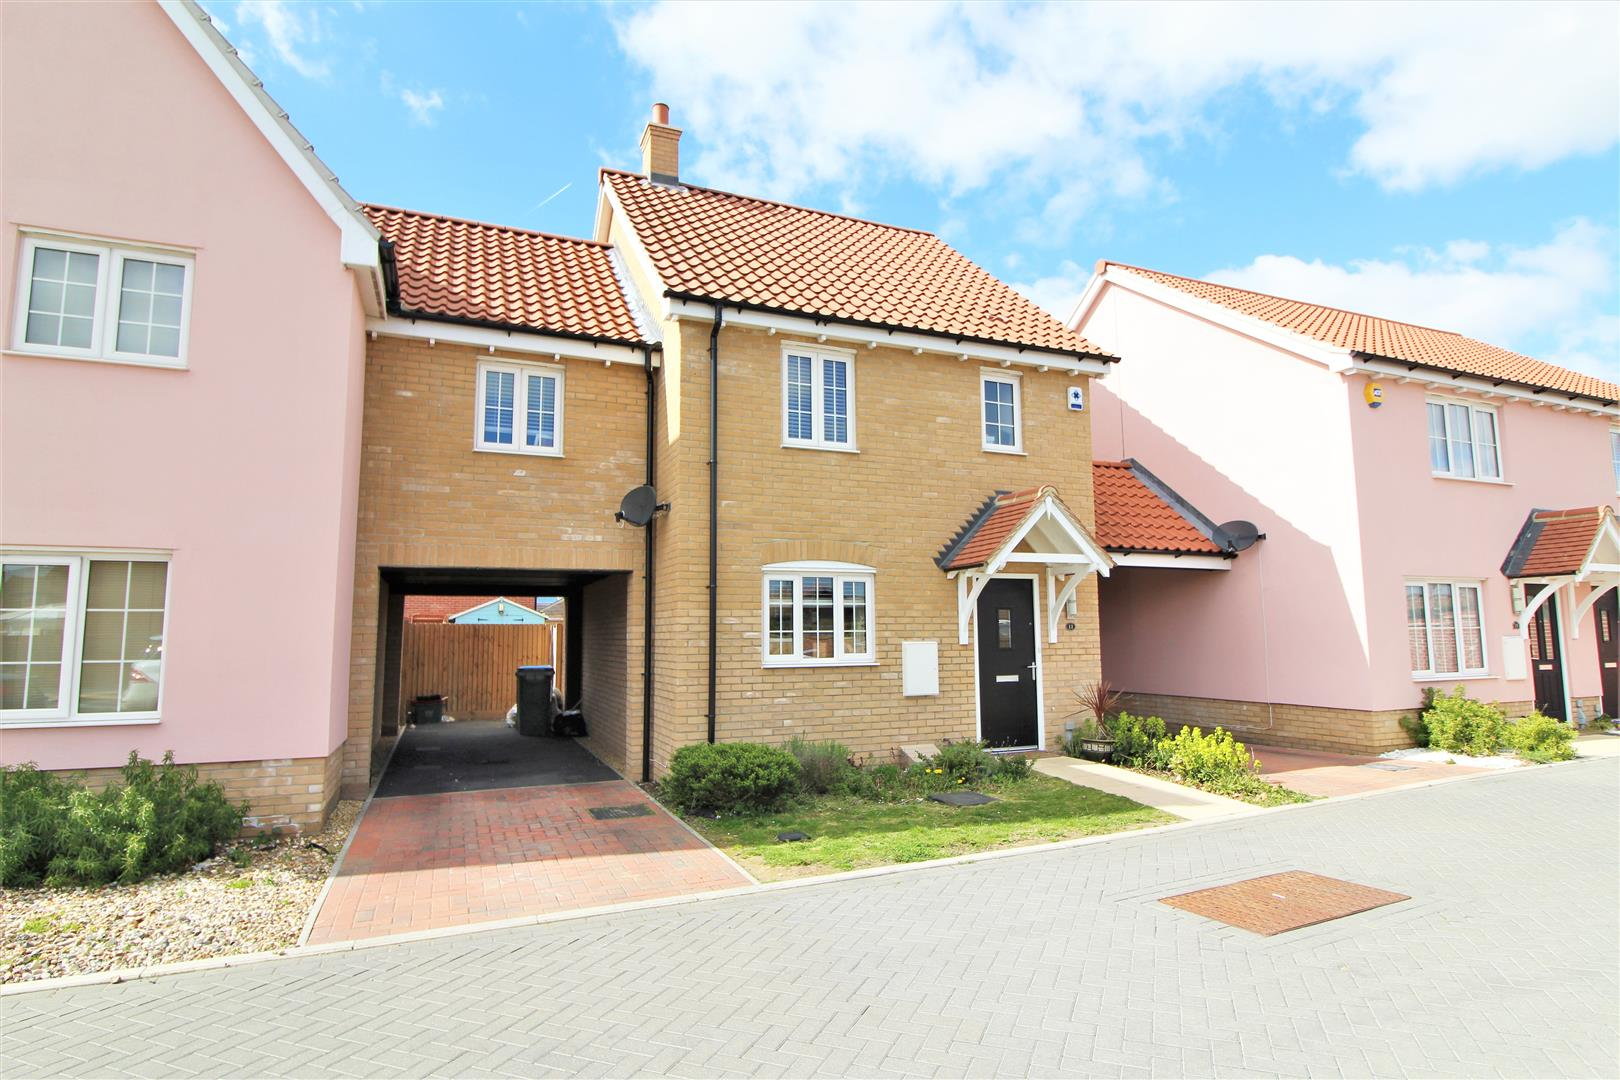 Addis Road, Clacton-On-Sea, , CO16 8GR